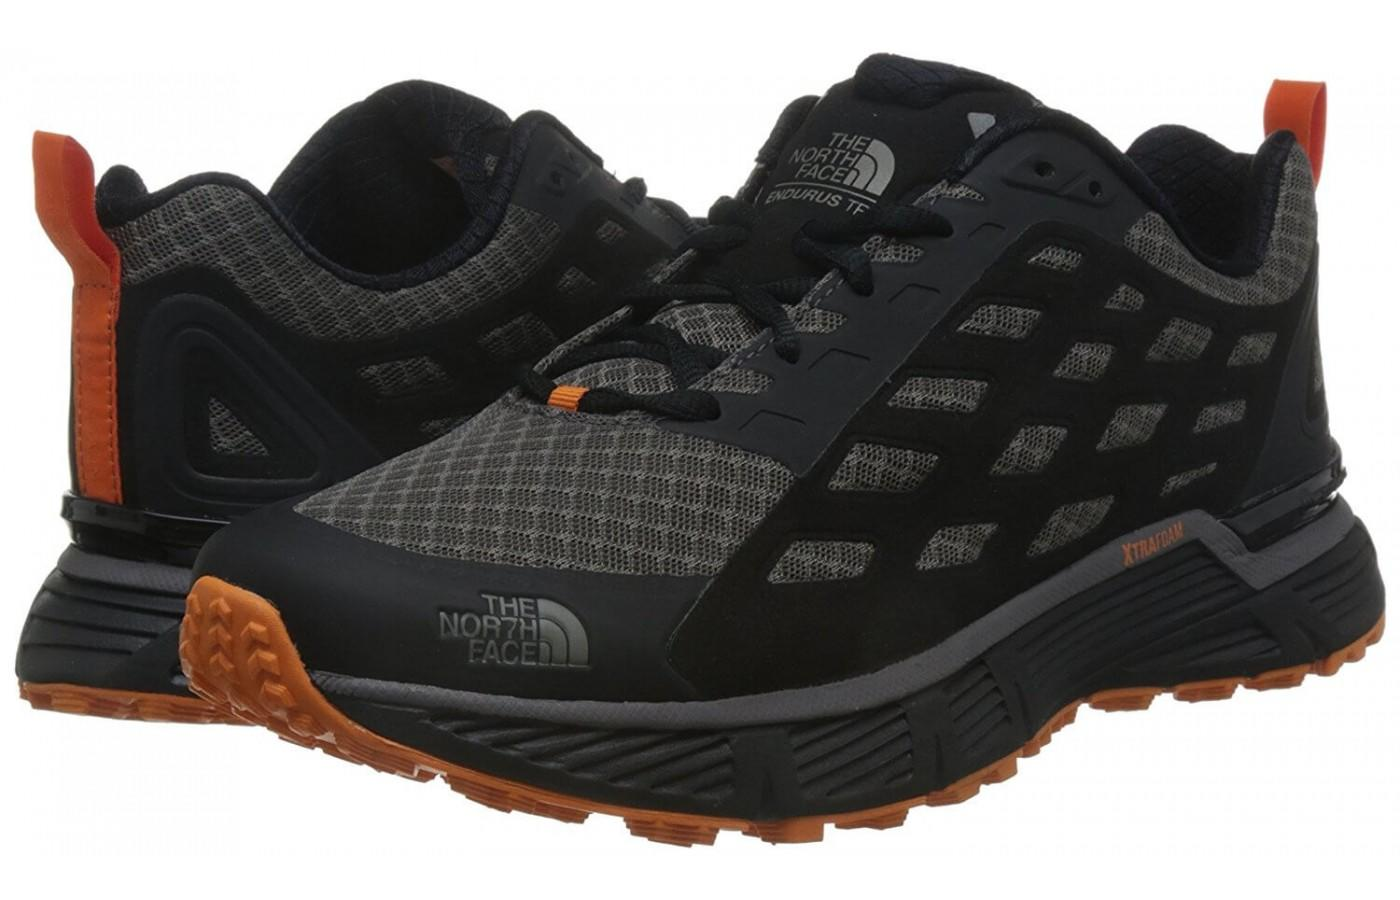 a pair of The North Face Endurus TR are durable and comfortable, lasting a long time after first step-in